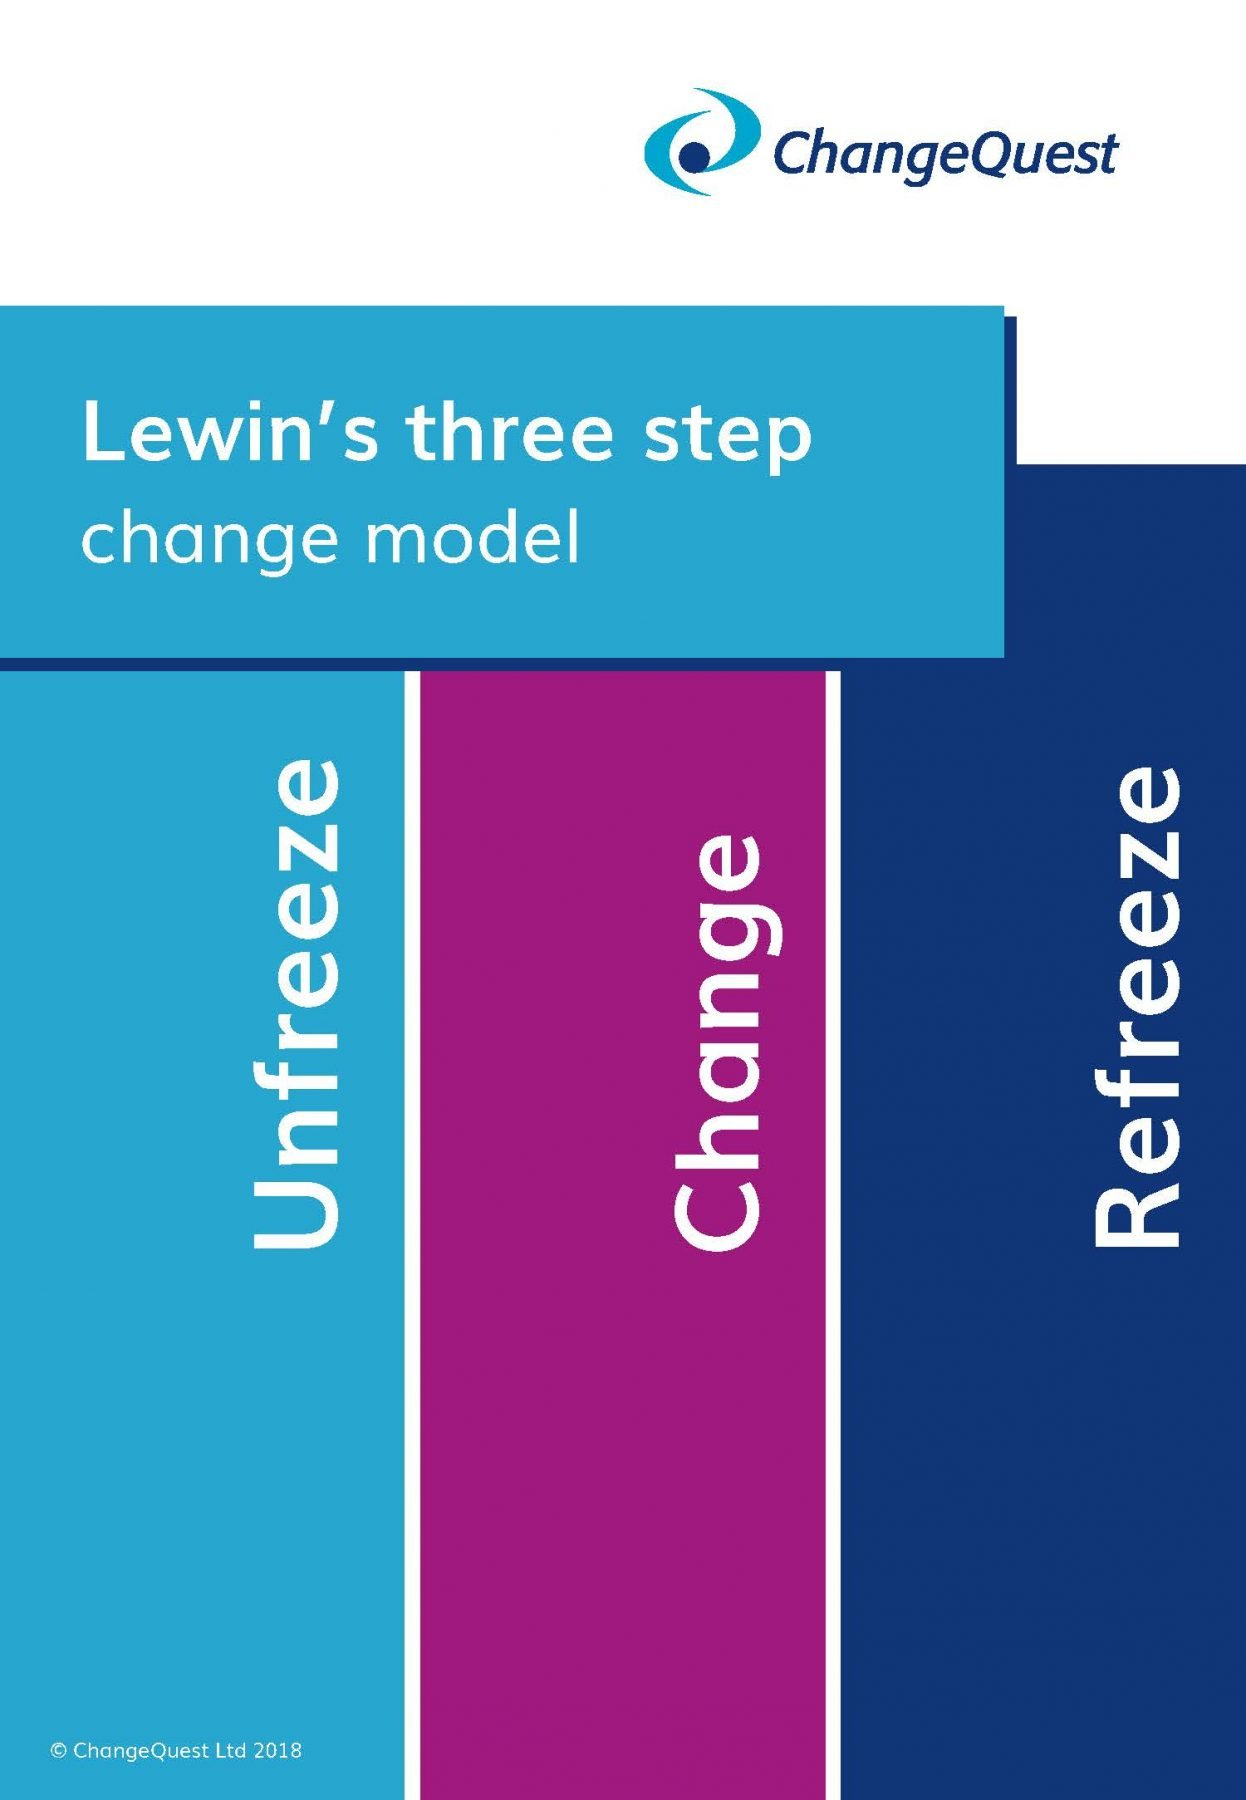 Lewin's 3 step change model